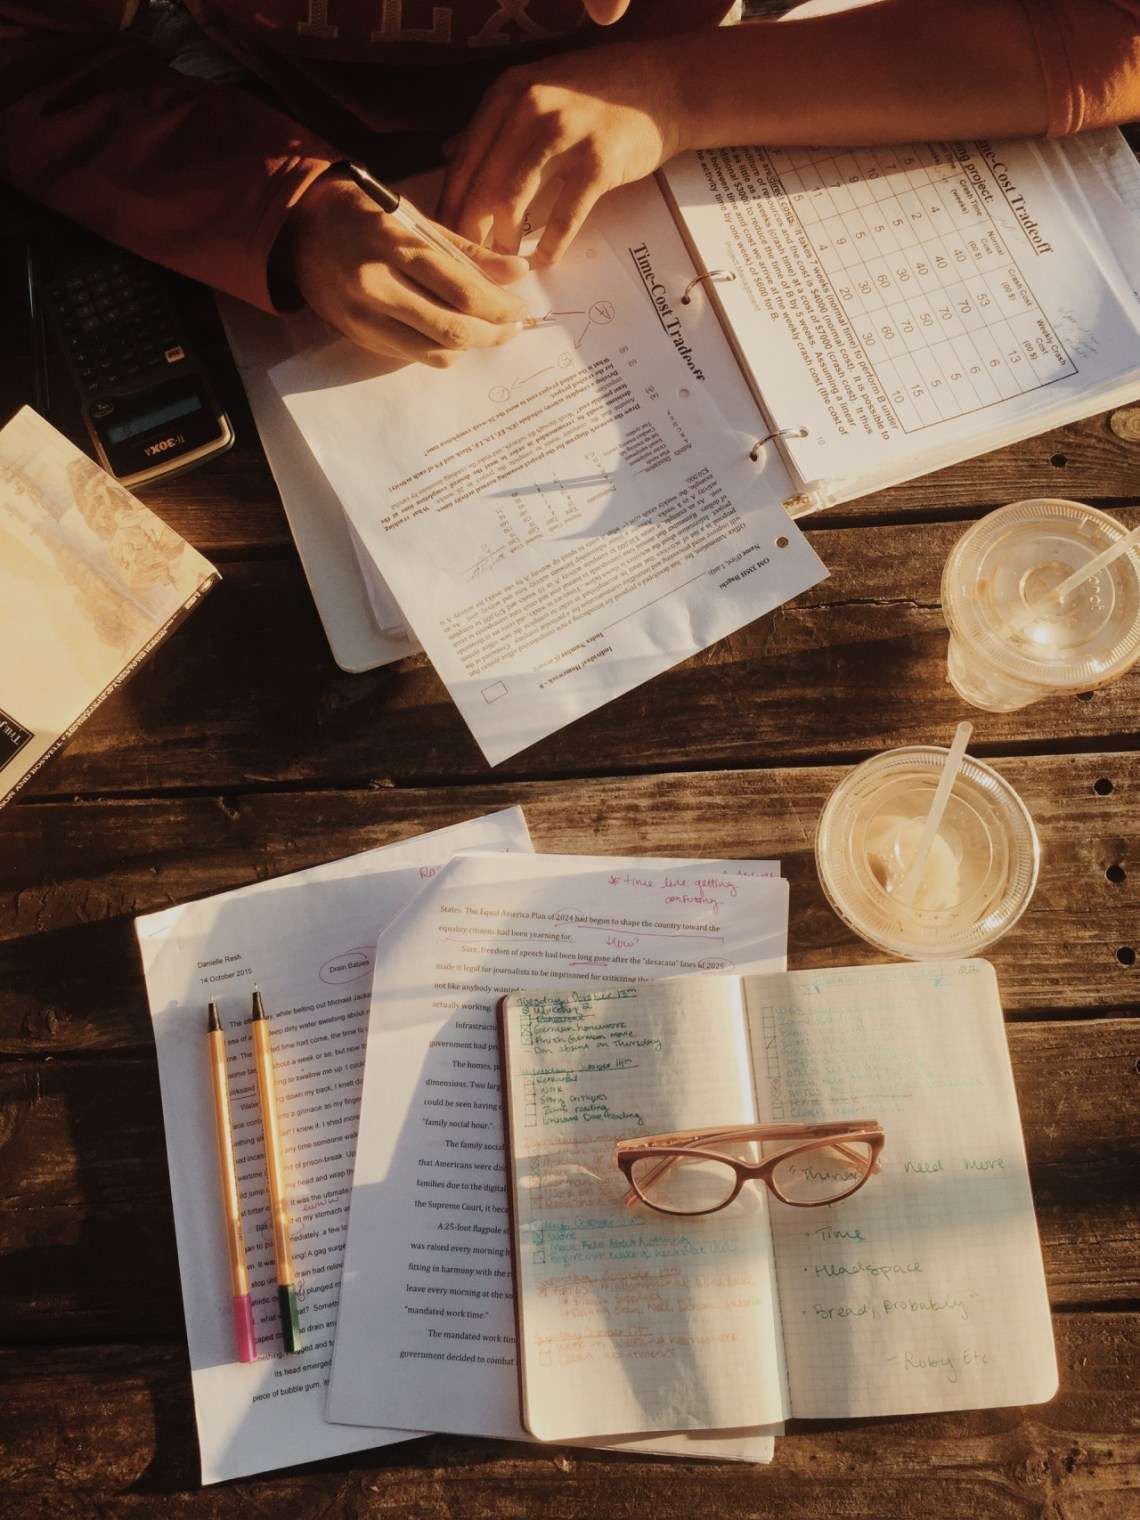 10/18/2015 || evening light, beautiful weather, and the mid-semester grind